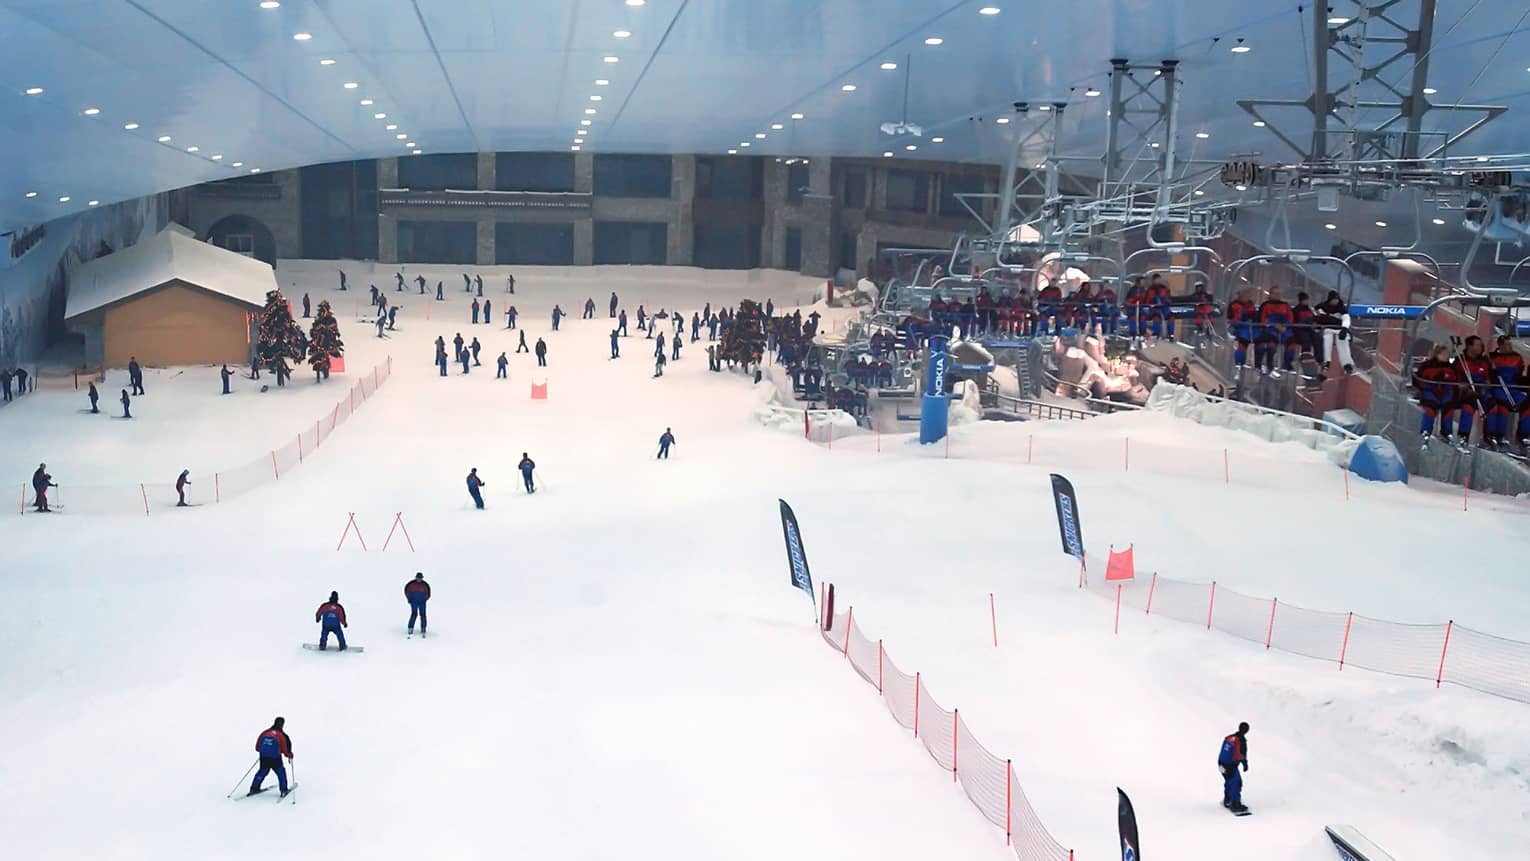 Aerial view of people skiing down slopes at indoor ski park